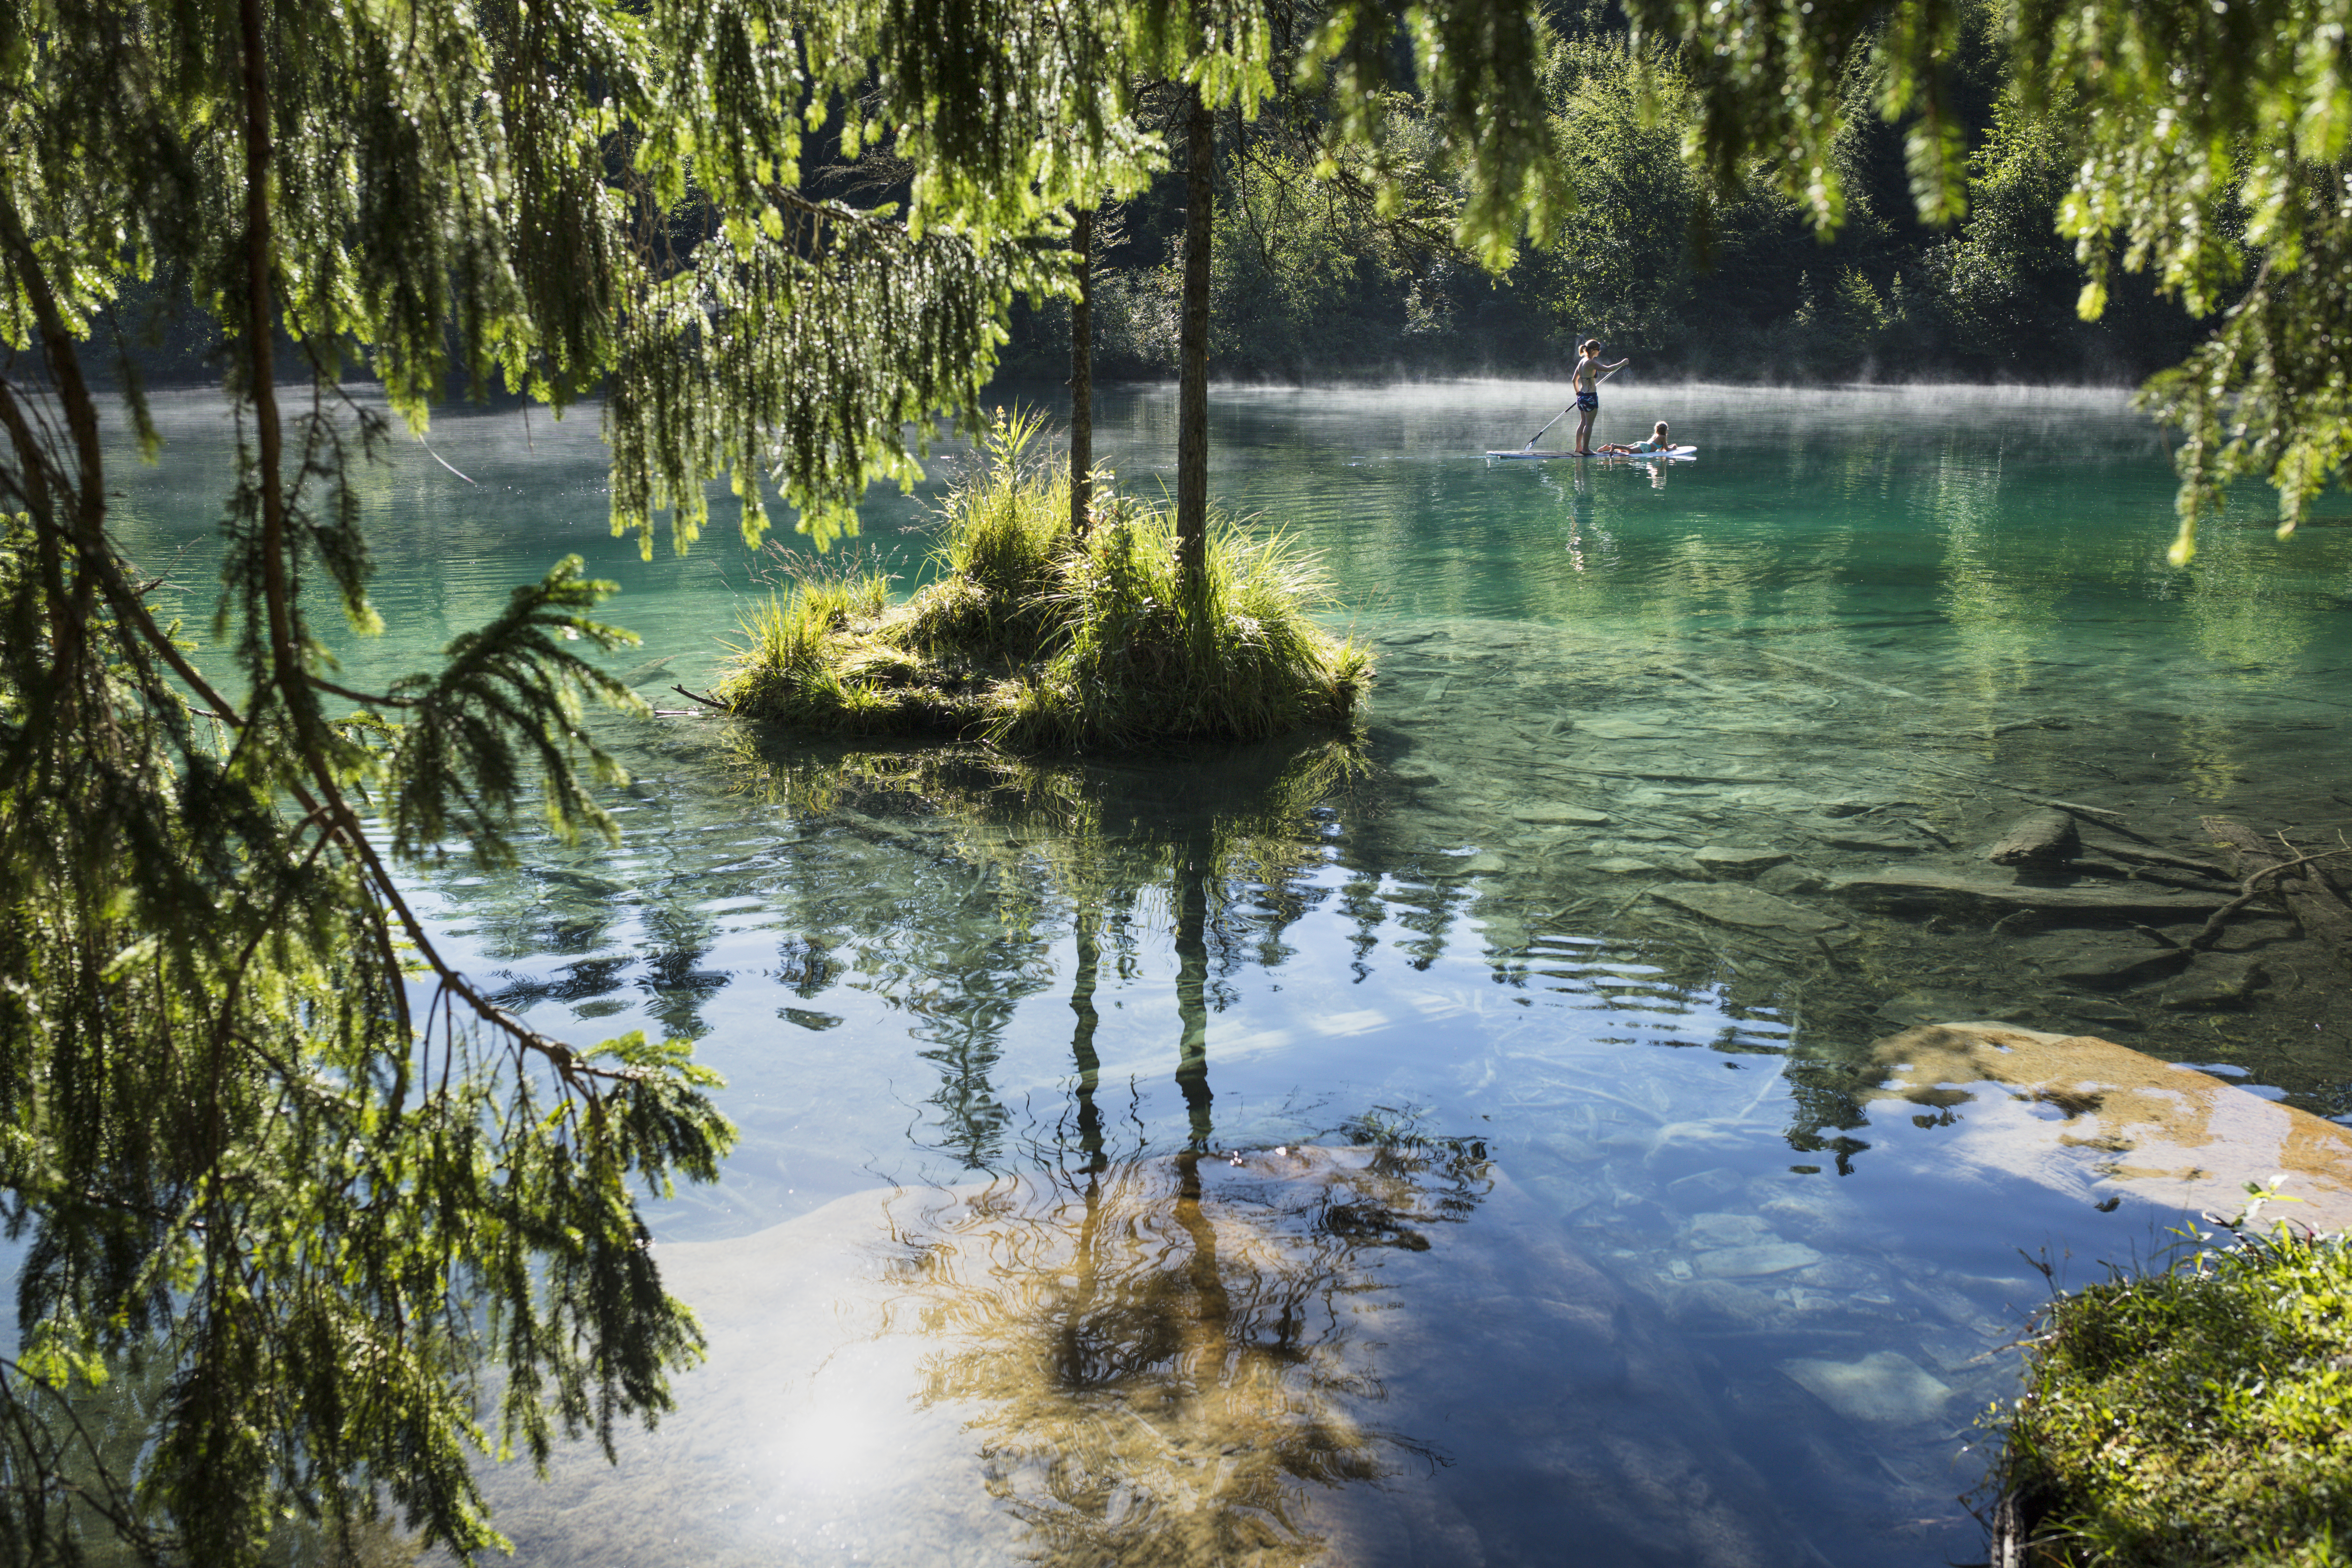 Guided hike: The most beautiful lakes